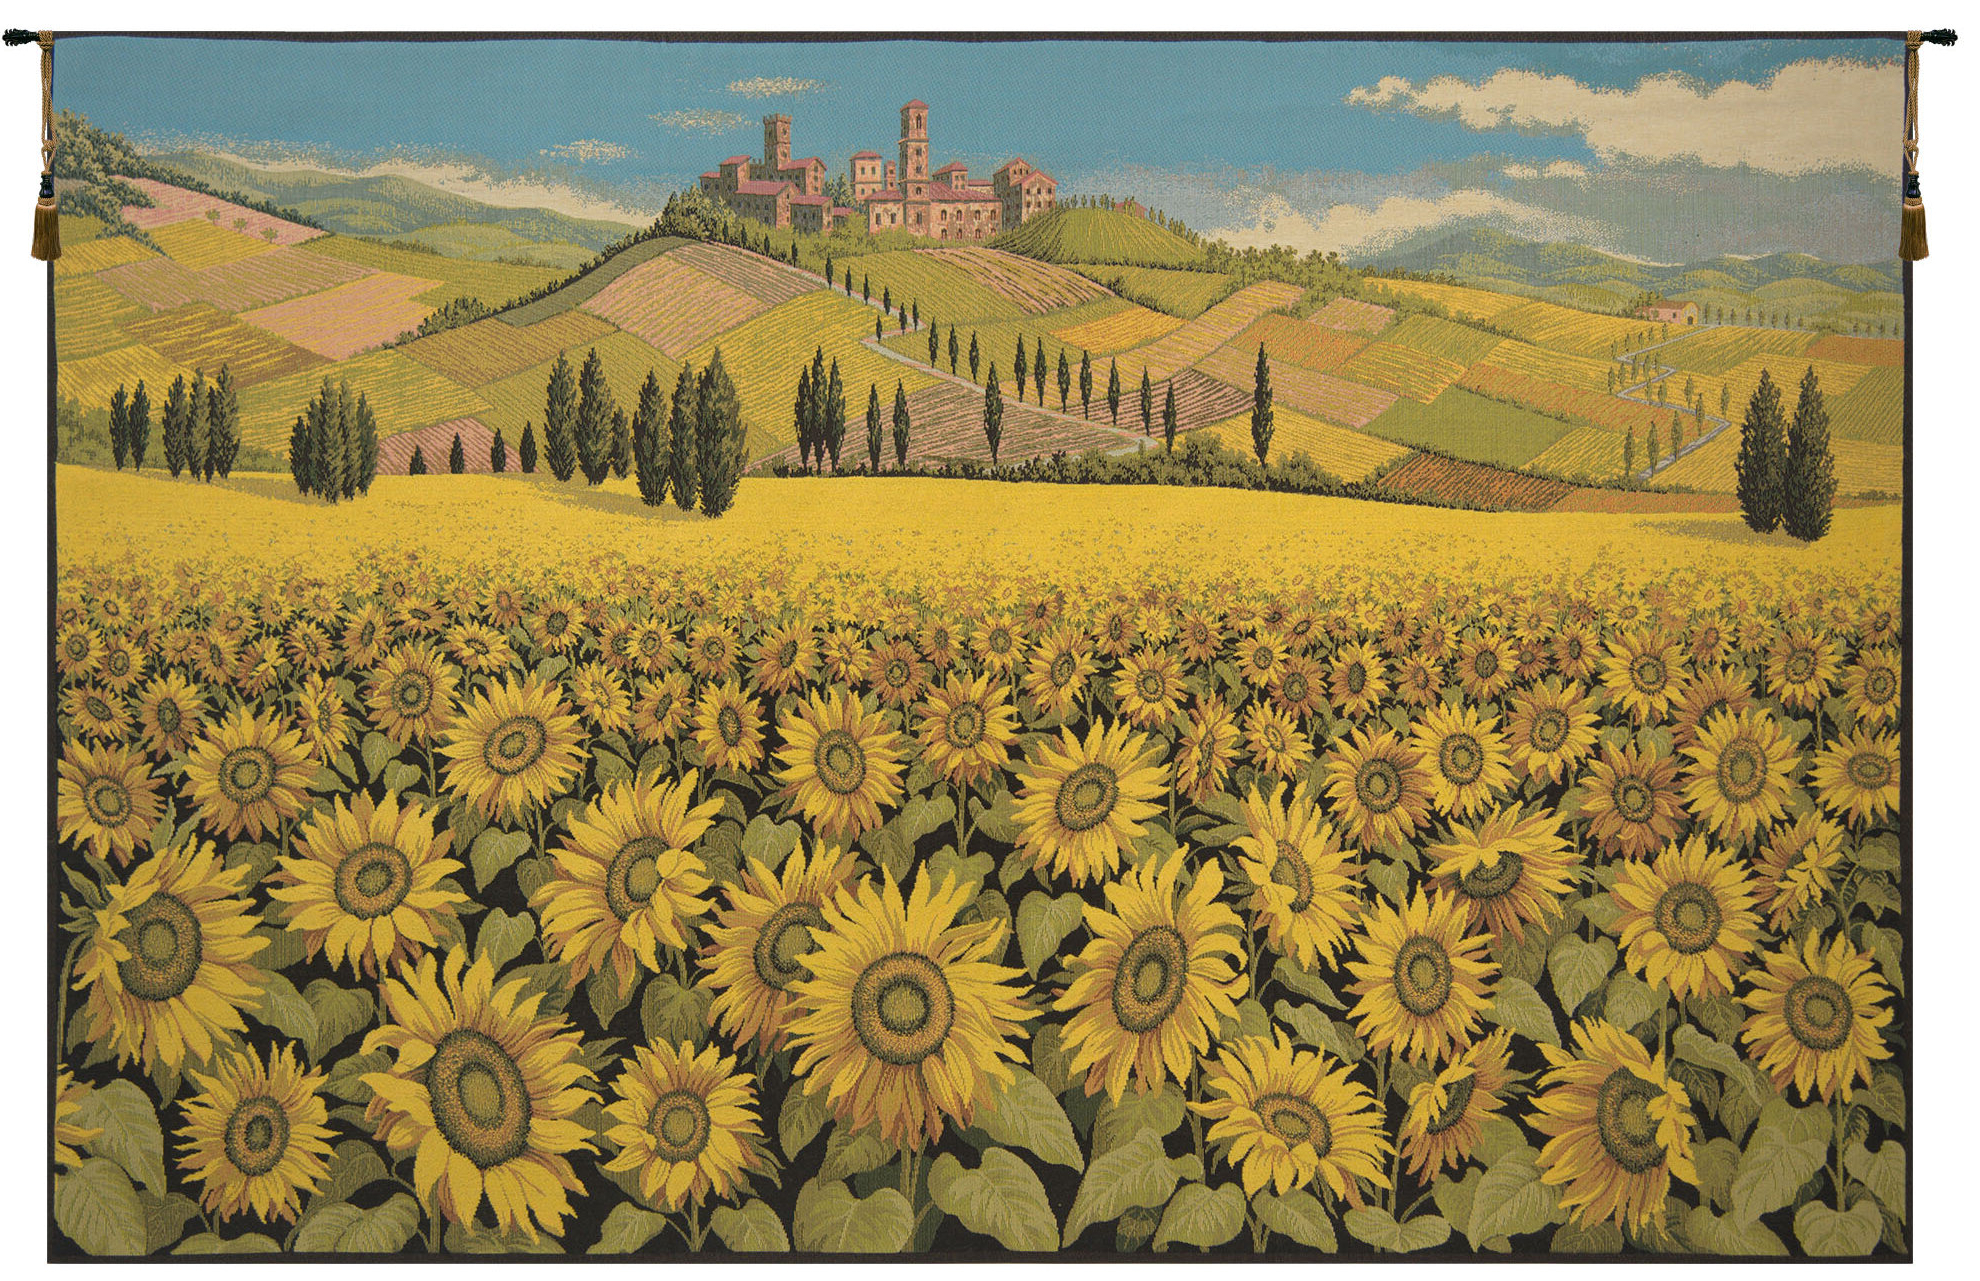 Sunflower Landscape Wall Hanging Pertaining To Well Known Blended Fabric Crocifissione Wall Hangings (View 6 of 20)